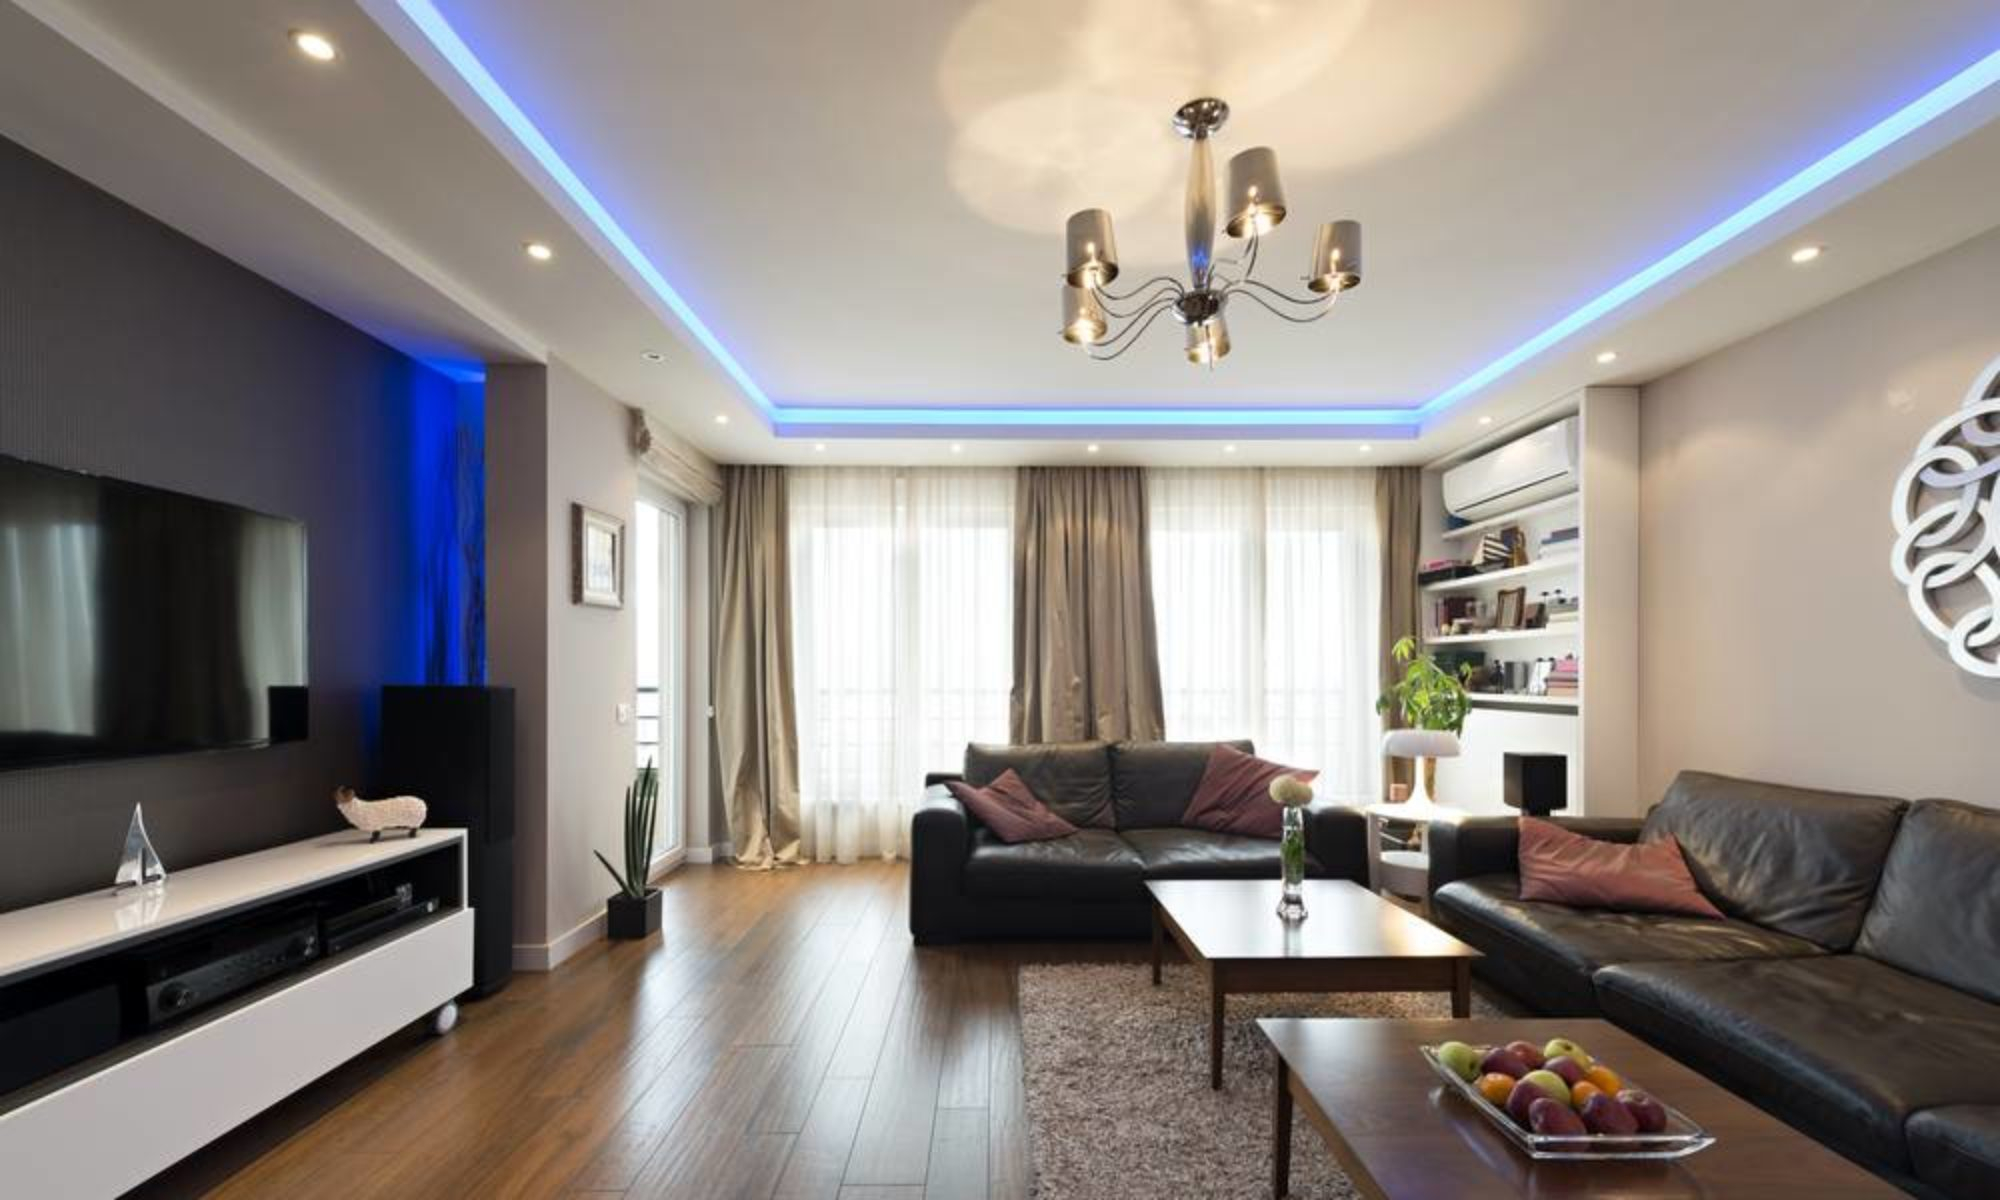 Full Size of Led Beleuchtung Wohnzimmer Farbwechsel Wohnzimmer Mit Led Beleuchtung Led Beleuchtung Wohnzimmer Decke Led Leuchten Für Wohnzimmer Wohnzimmer Led Beleuchtung Wohnzimmer